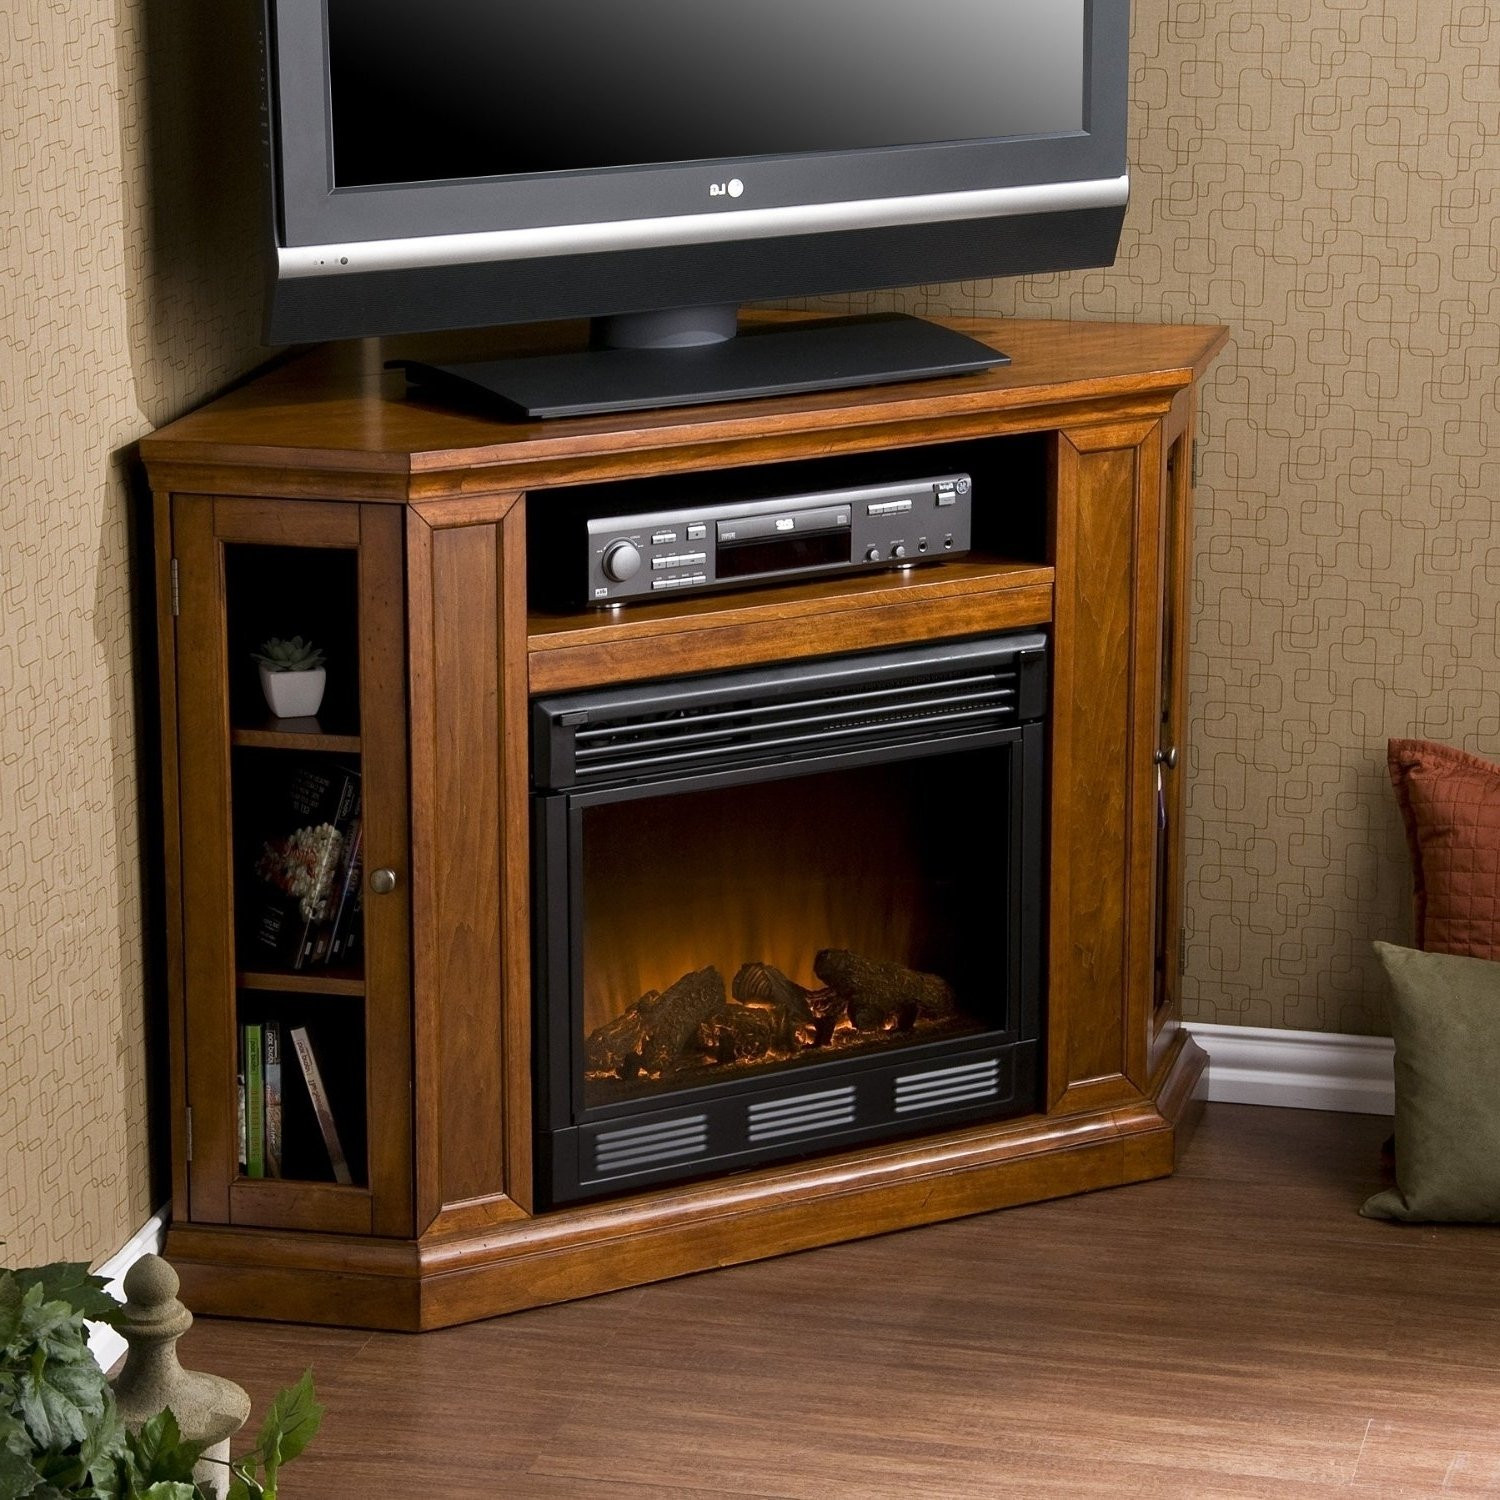 Best ideas about Electric Fireplace Tv Stands Costco . Save or Pin Furniture Adorable Fireplace Tv Stand Costco For Any Now.